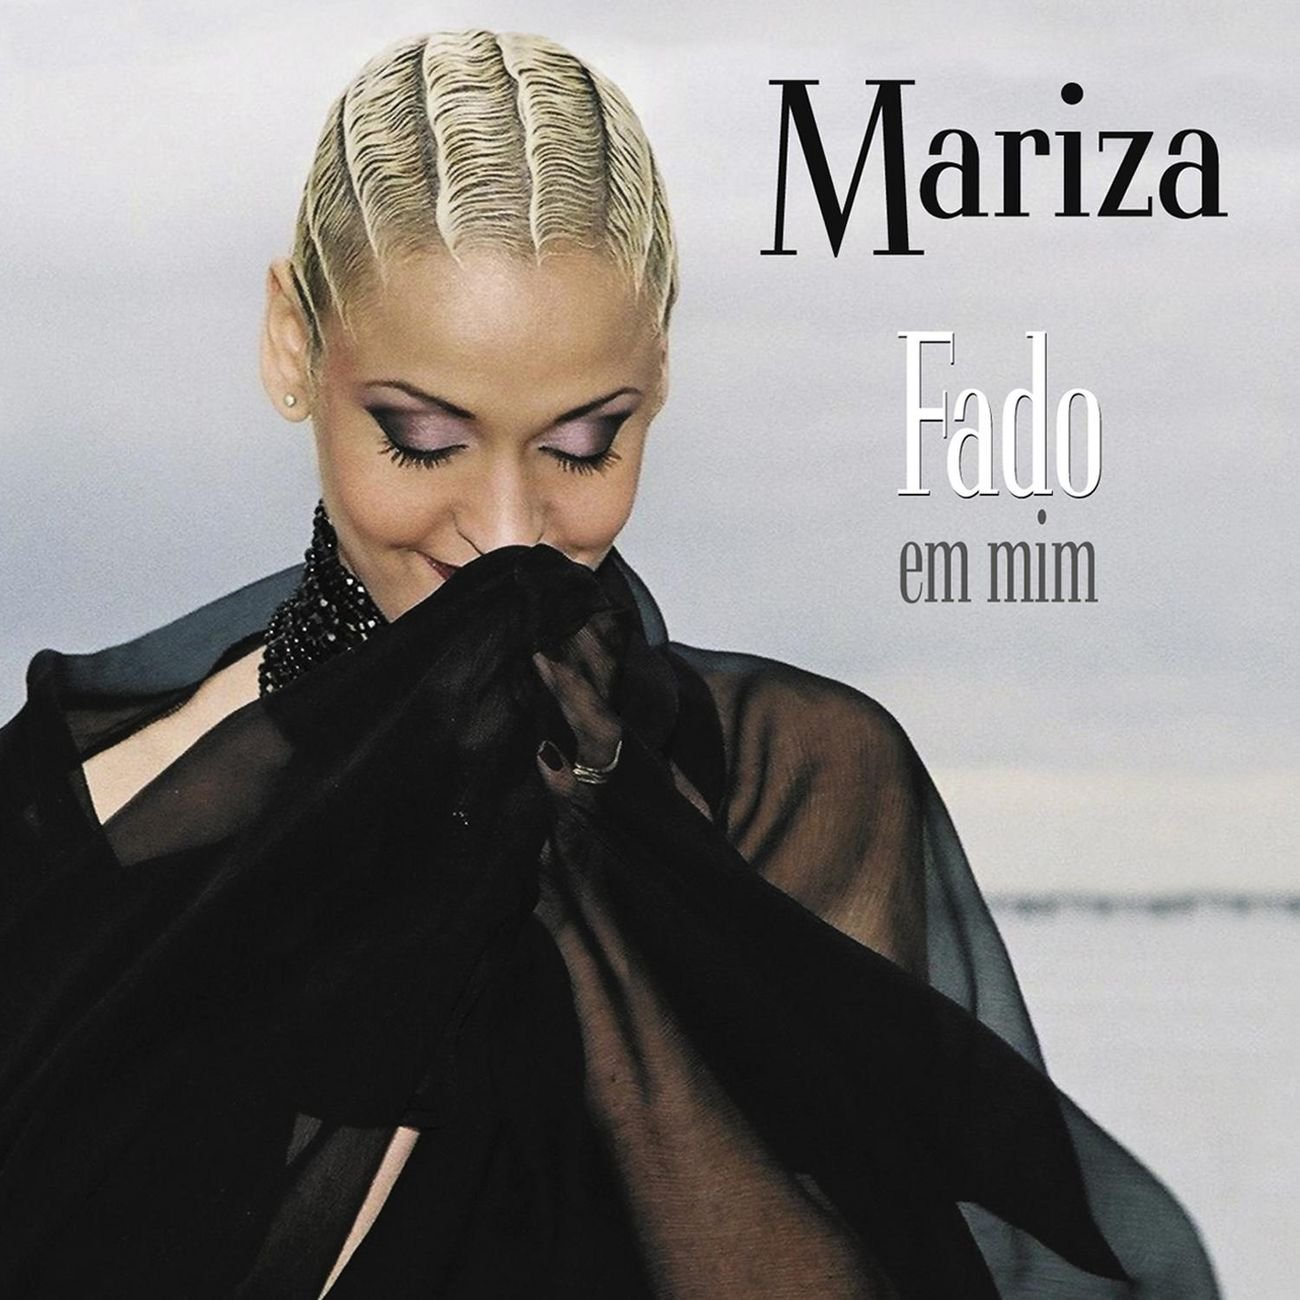 fado em mim mariza listen and discover music at. Black Bedroom Furniture Sets. Home Design Ideas